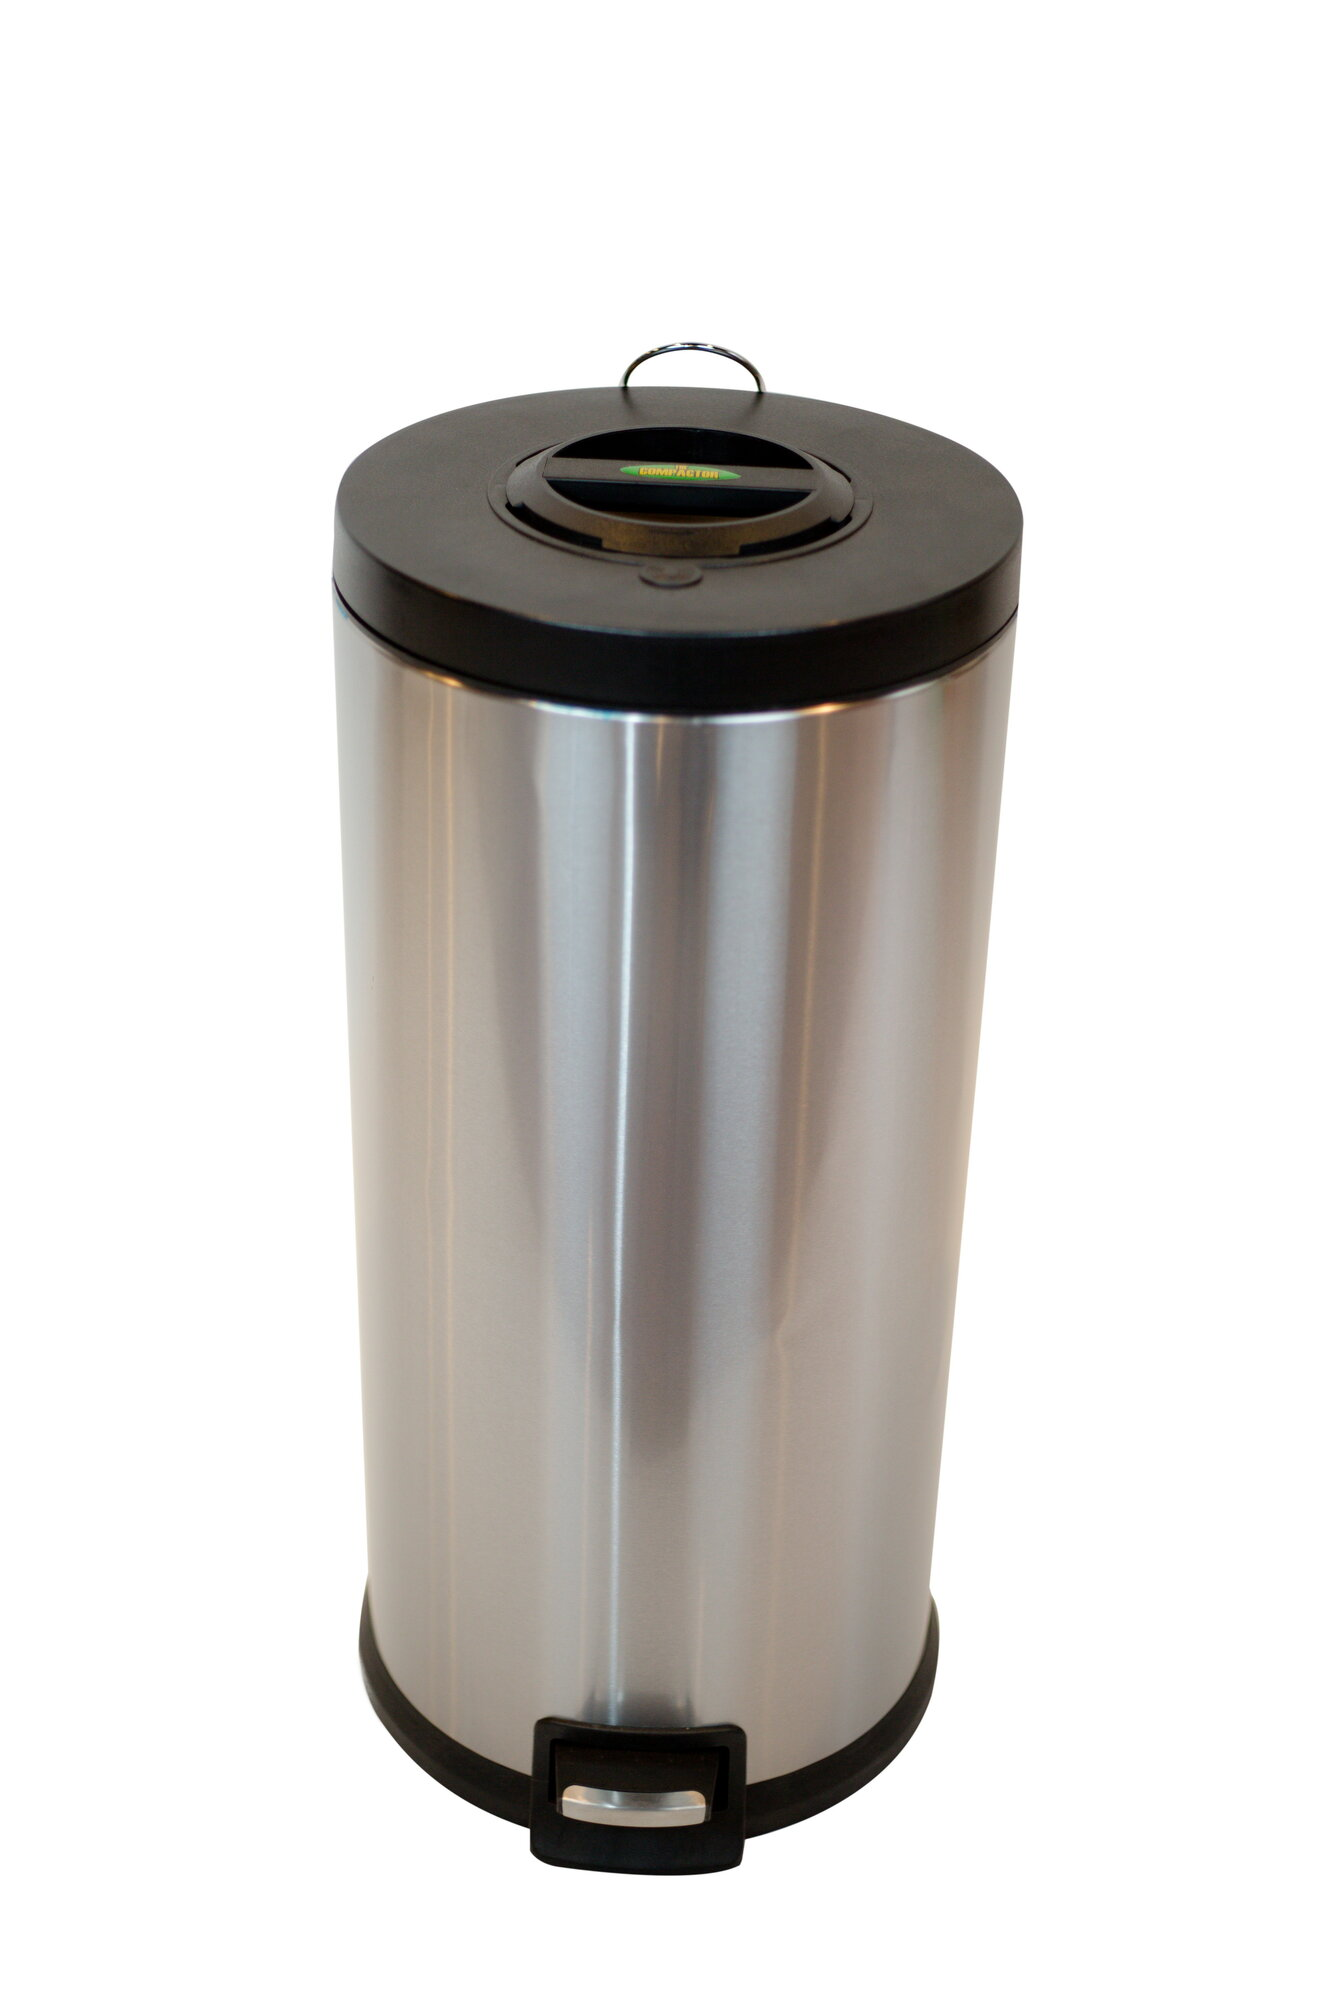 arista compactor step lid 7 9 gallon step on stainless steel trash can ebay. Black Bedroom Furniture Sets. Home Design Ideas